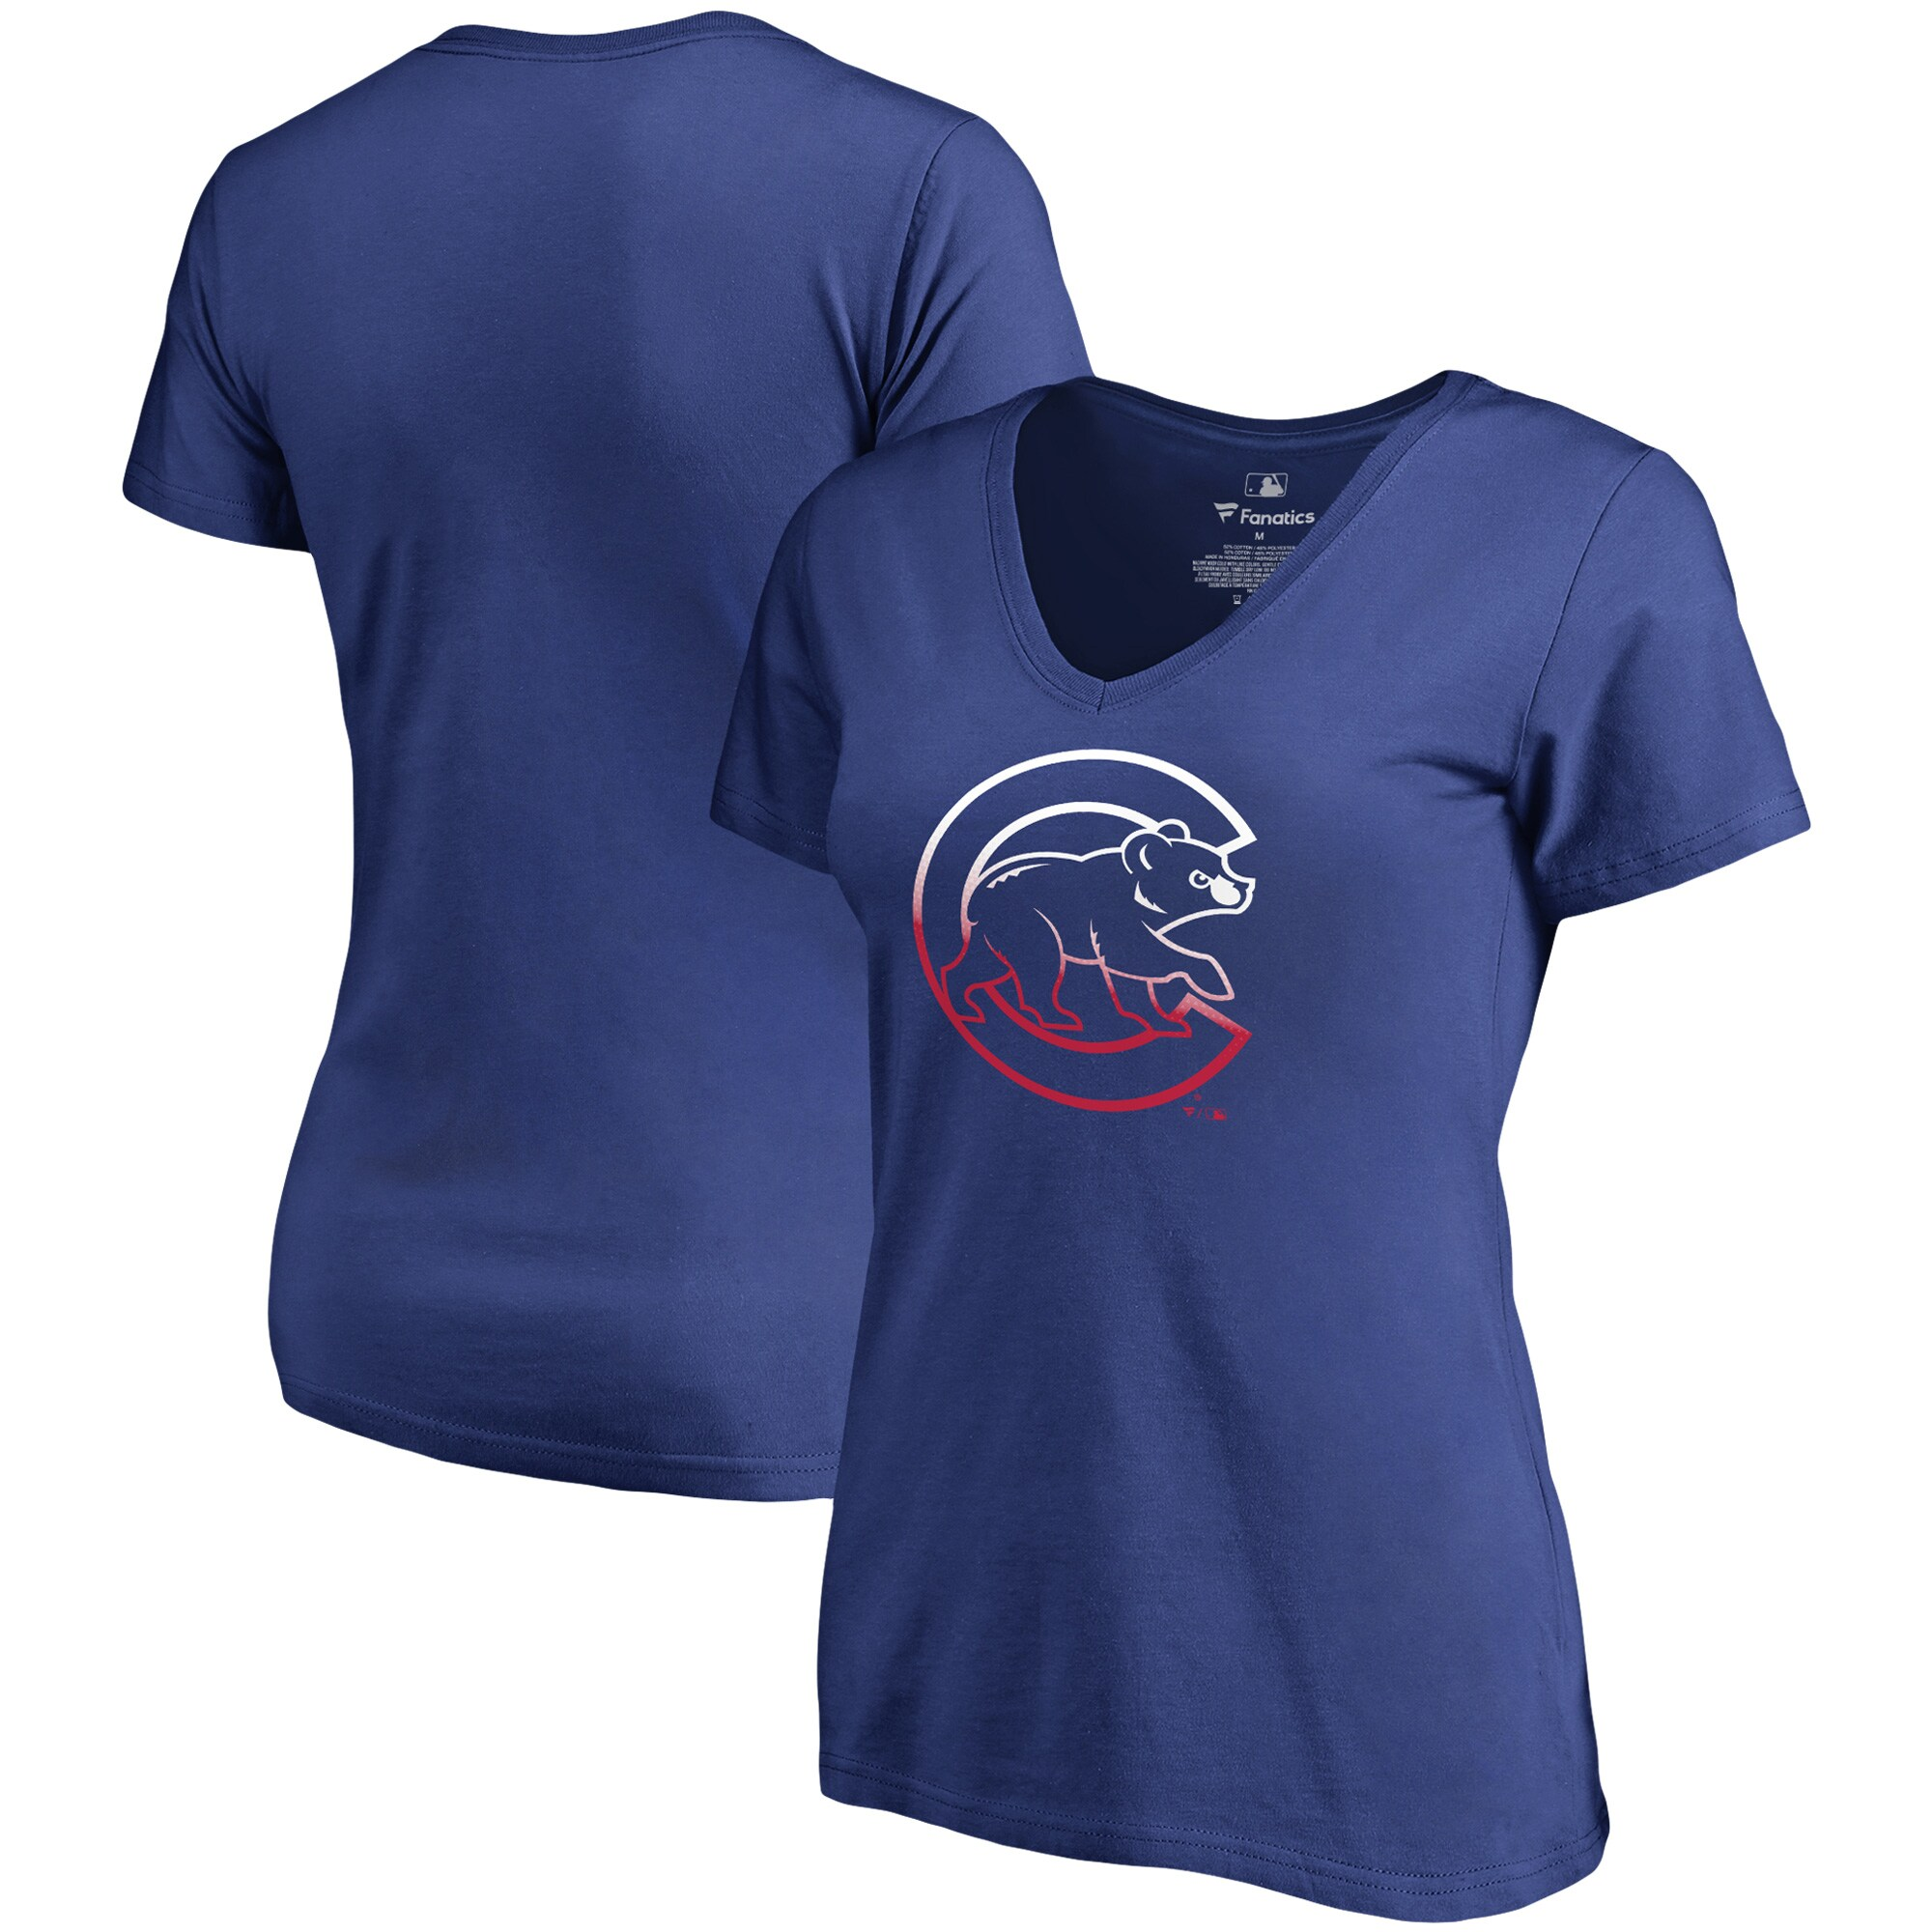 Chicago Cubs Fanatics Branded Women's Plus Size Gradient Logo T-Shirt - Royal